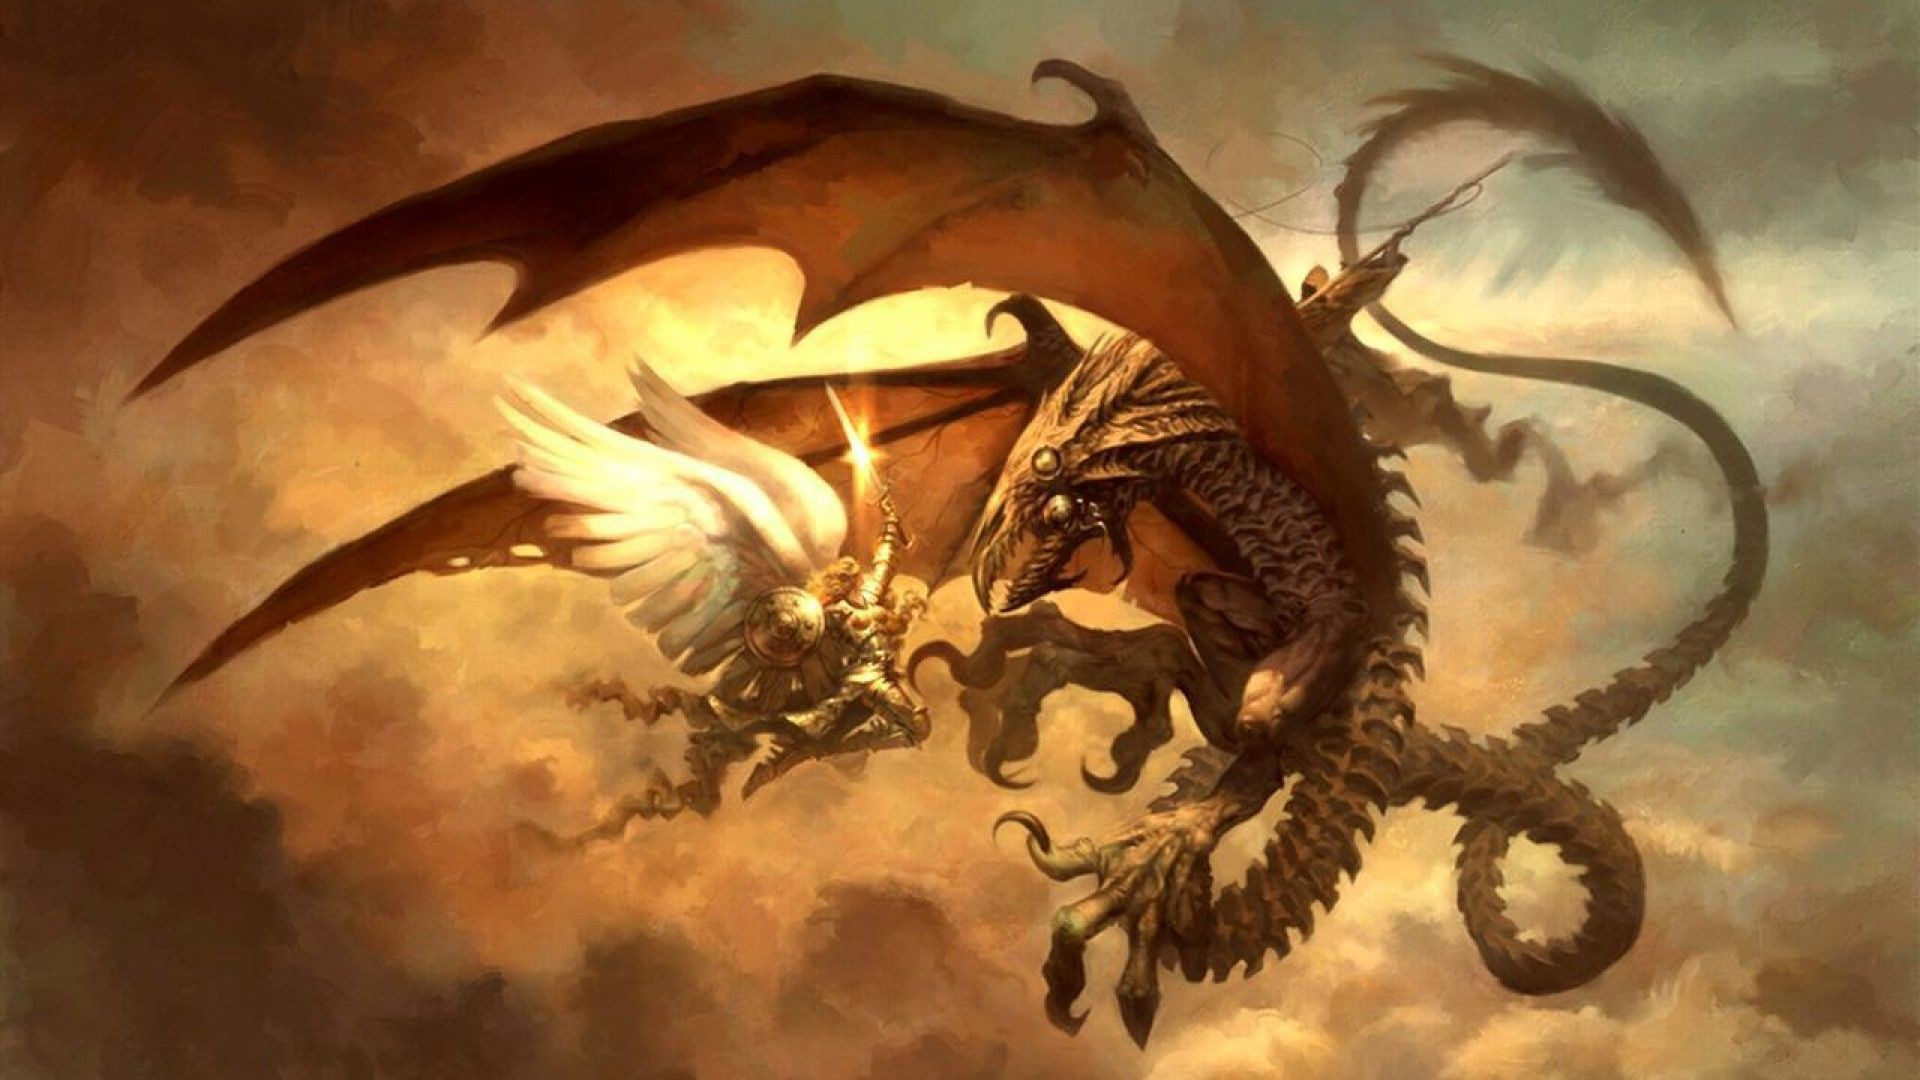 1920x1080 Fire Dragon HD desktop wallpaper : Widescreen : High Definition 1024×768  Dragon HD Wallpapers